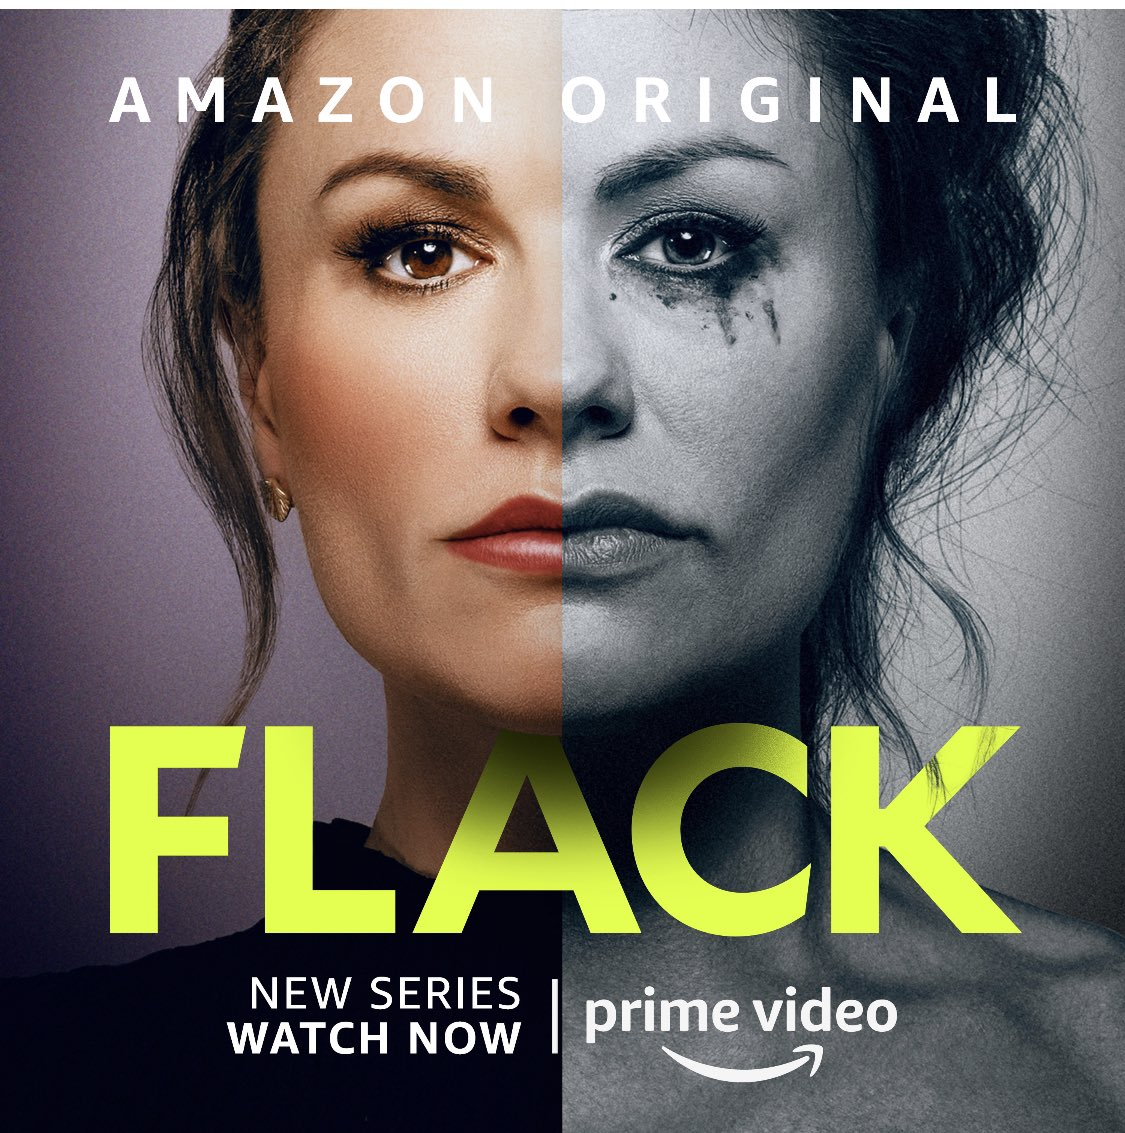 You can go watch ALL of season 1 of #flack .@FlackonPrime on @PrimeVideo NOW!!! Let me know what you think 🖤